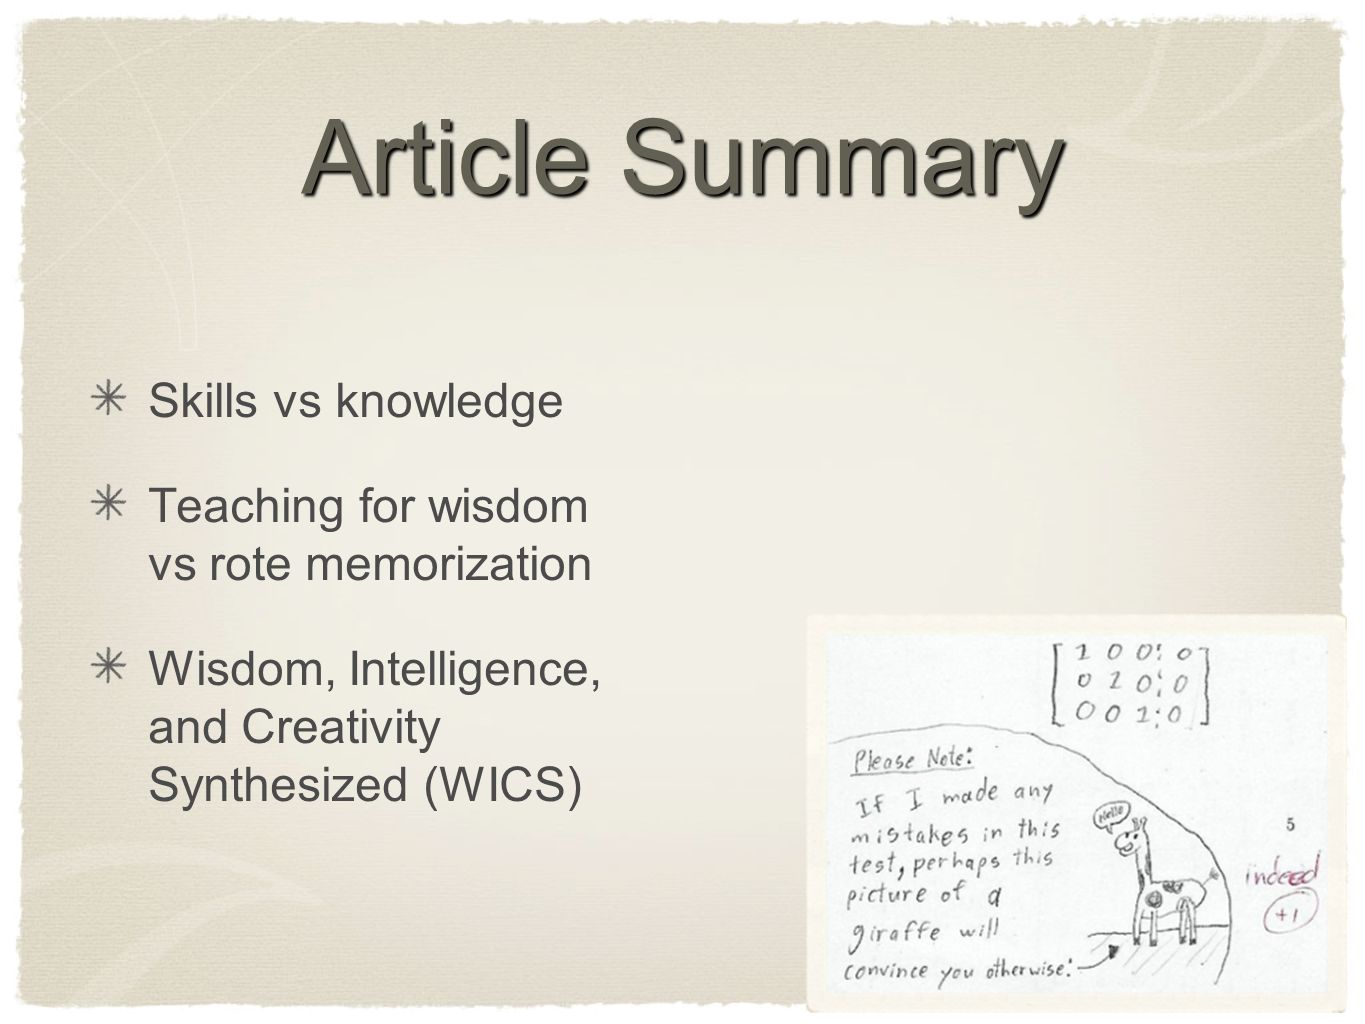 article summary 2 A summary begins with an introductory sentence that states the article's title and author 2 a summary must contain the main thesis or standpoint of the text, restated in your own words.